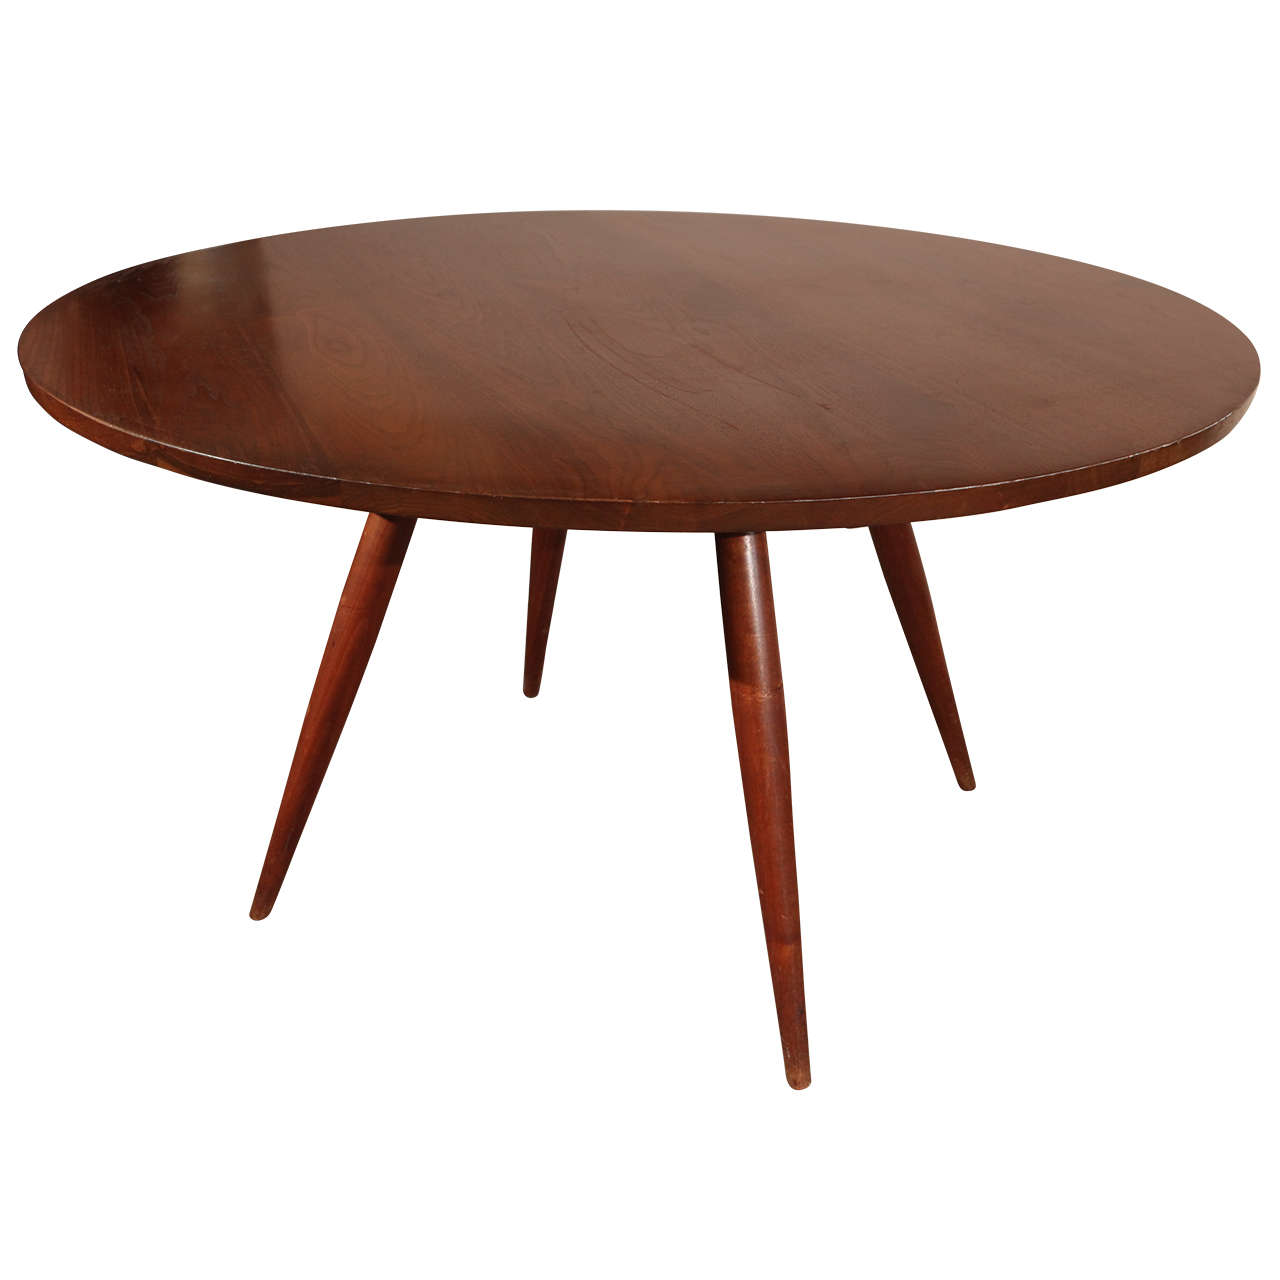 Nakashima Table george nakashima round dining table at 1stdibs